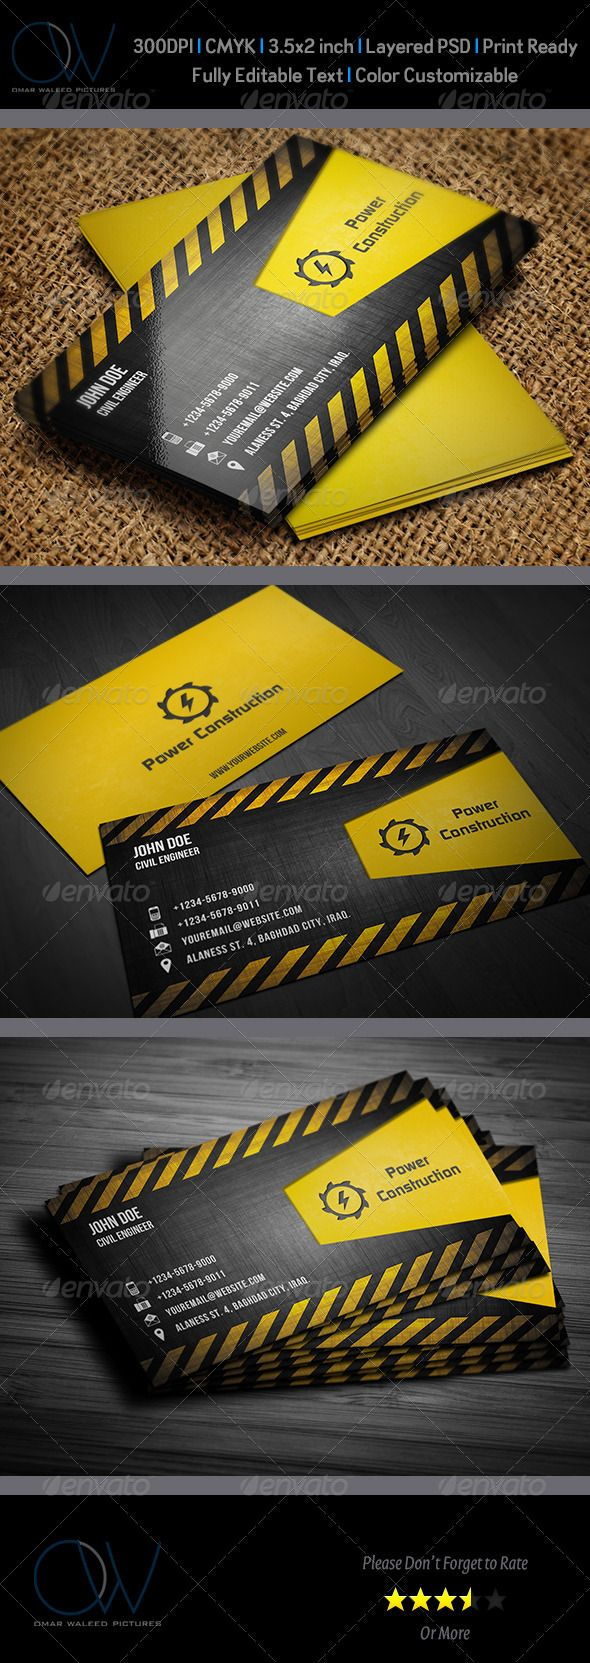 Construction Business Card Construction Business Cards